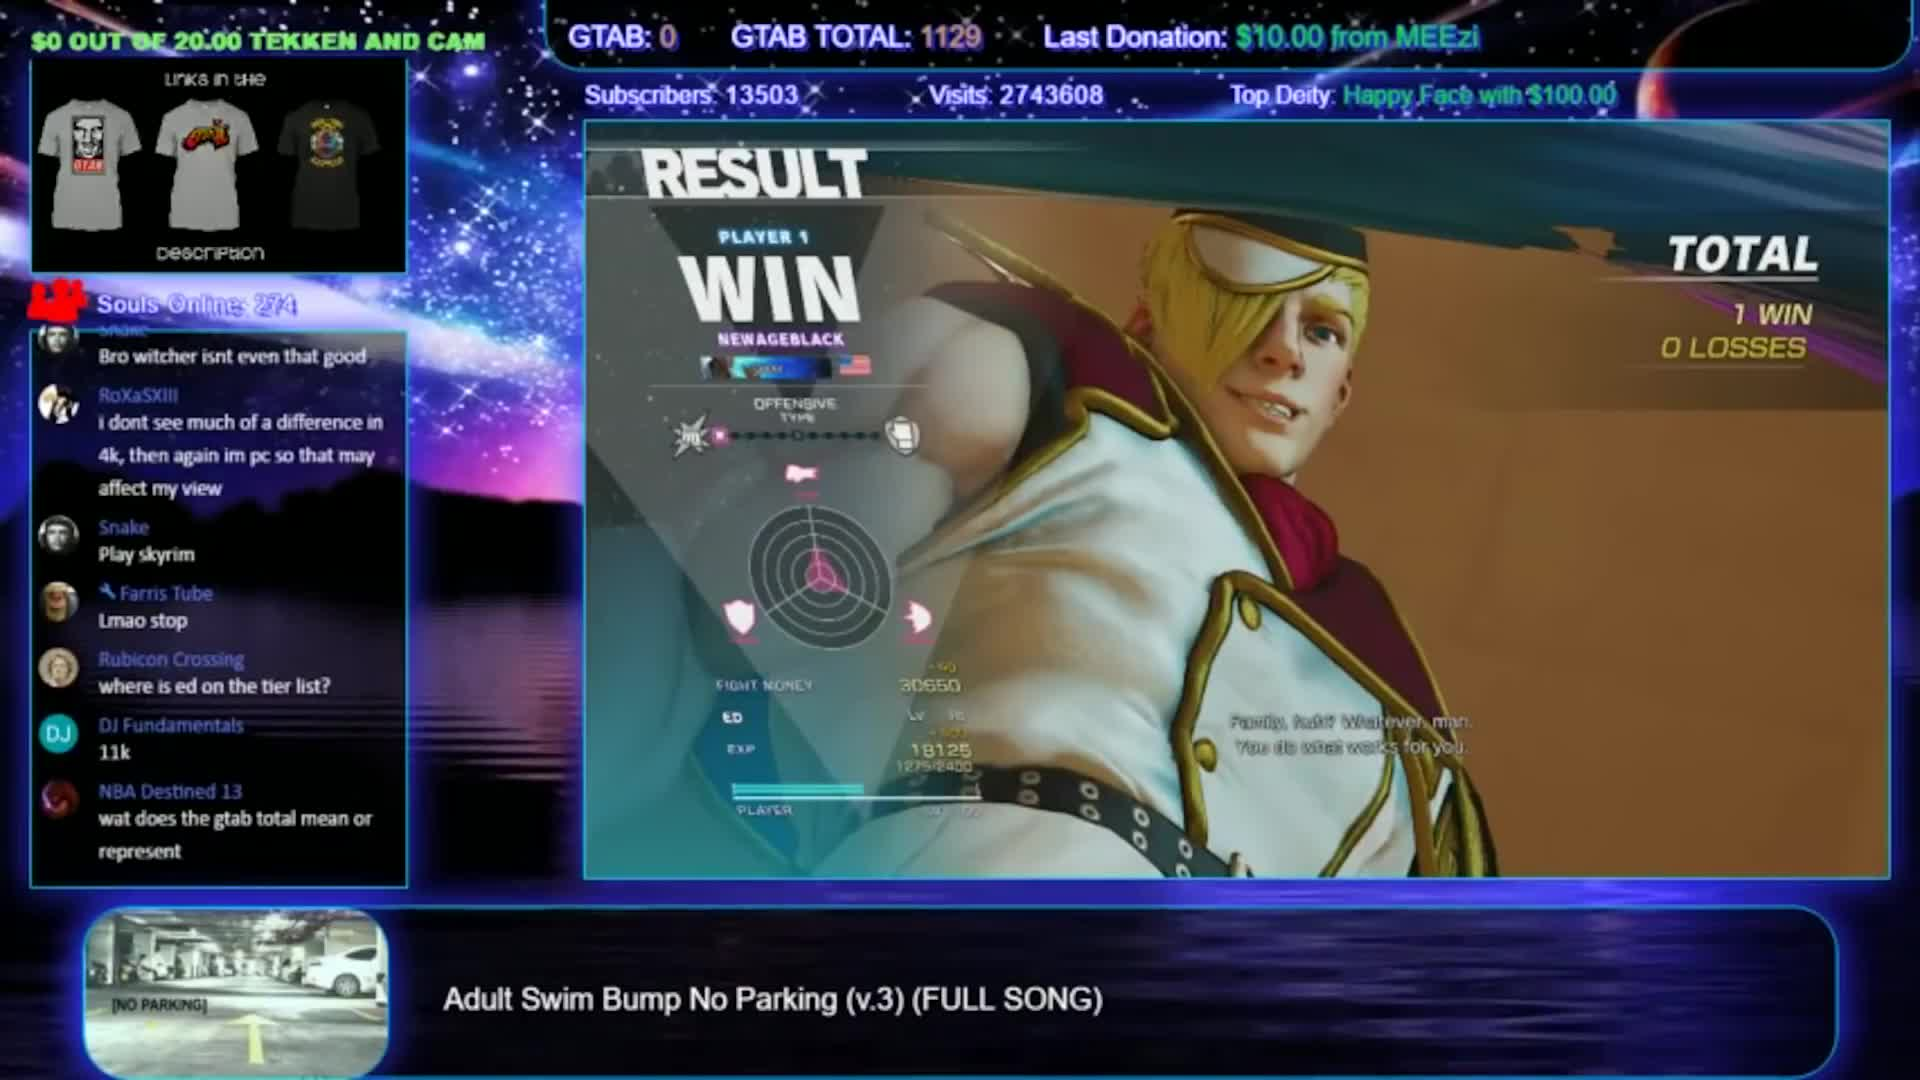 Low Tier God Rage Gifs Search | Search & Share on Homdor